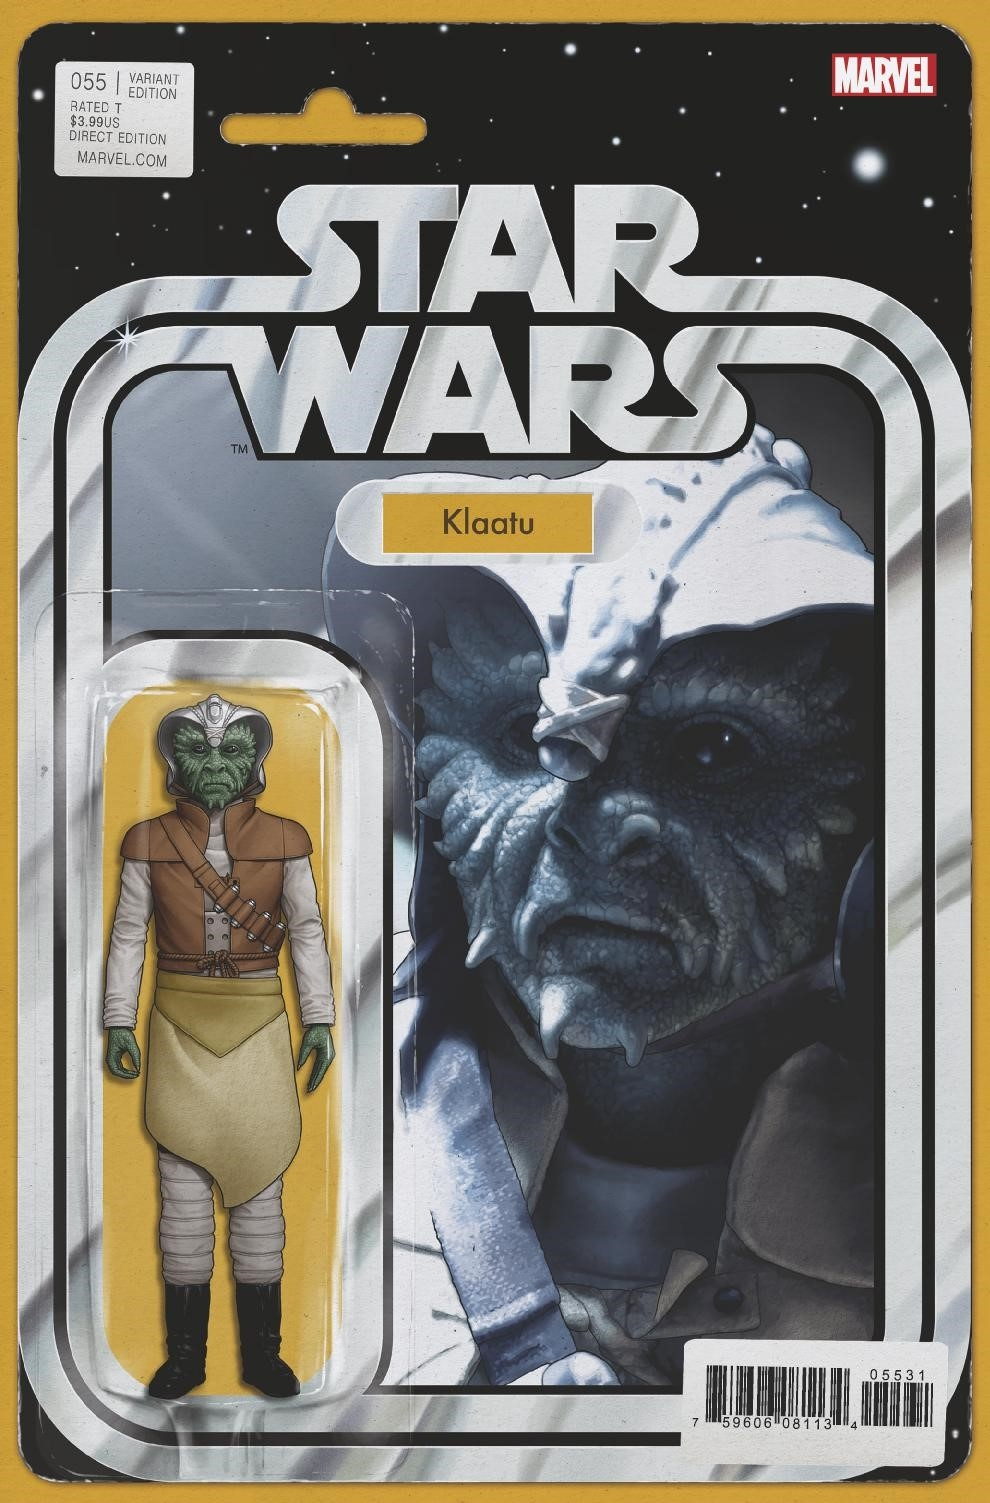 Star Wars #55 (Action Figure Variant Cover) (03.10.2018)